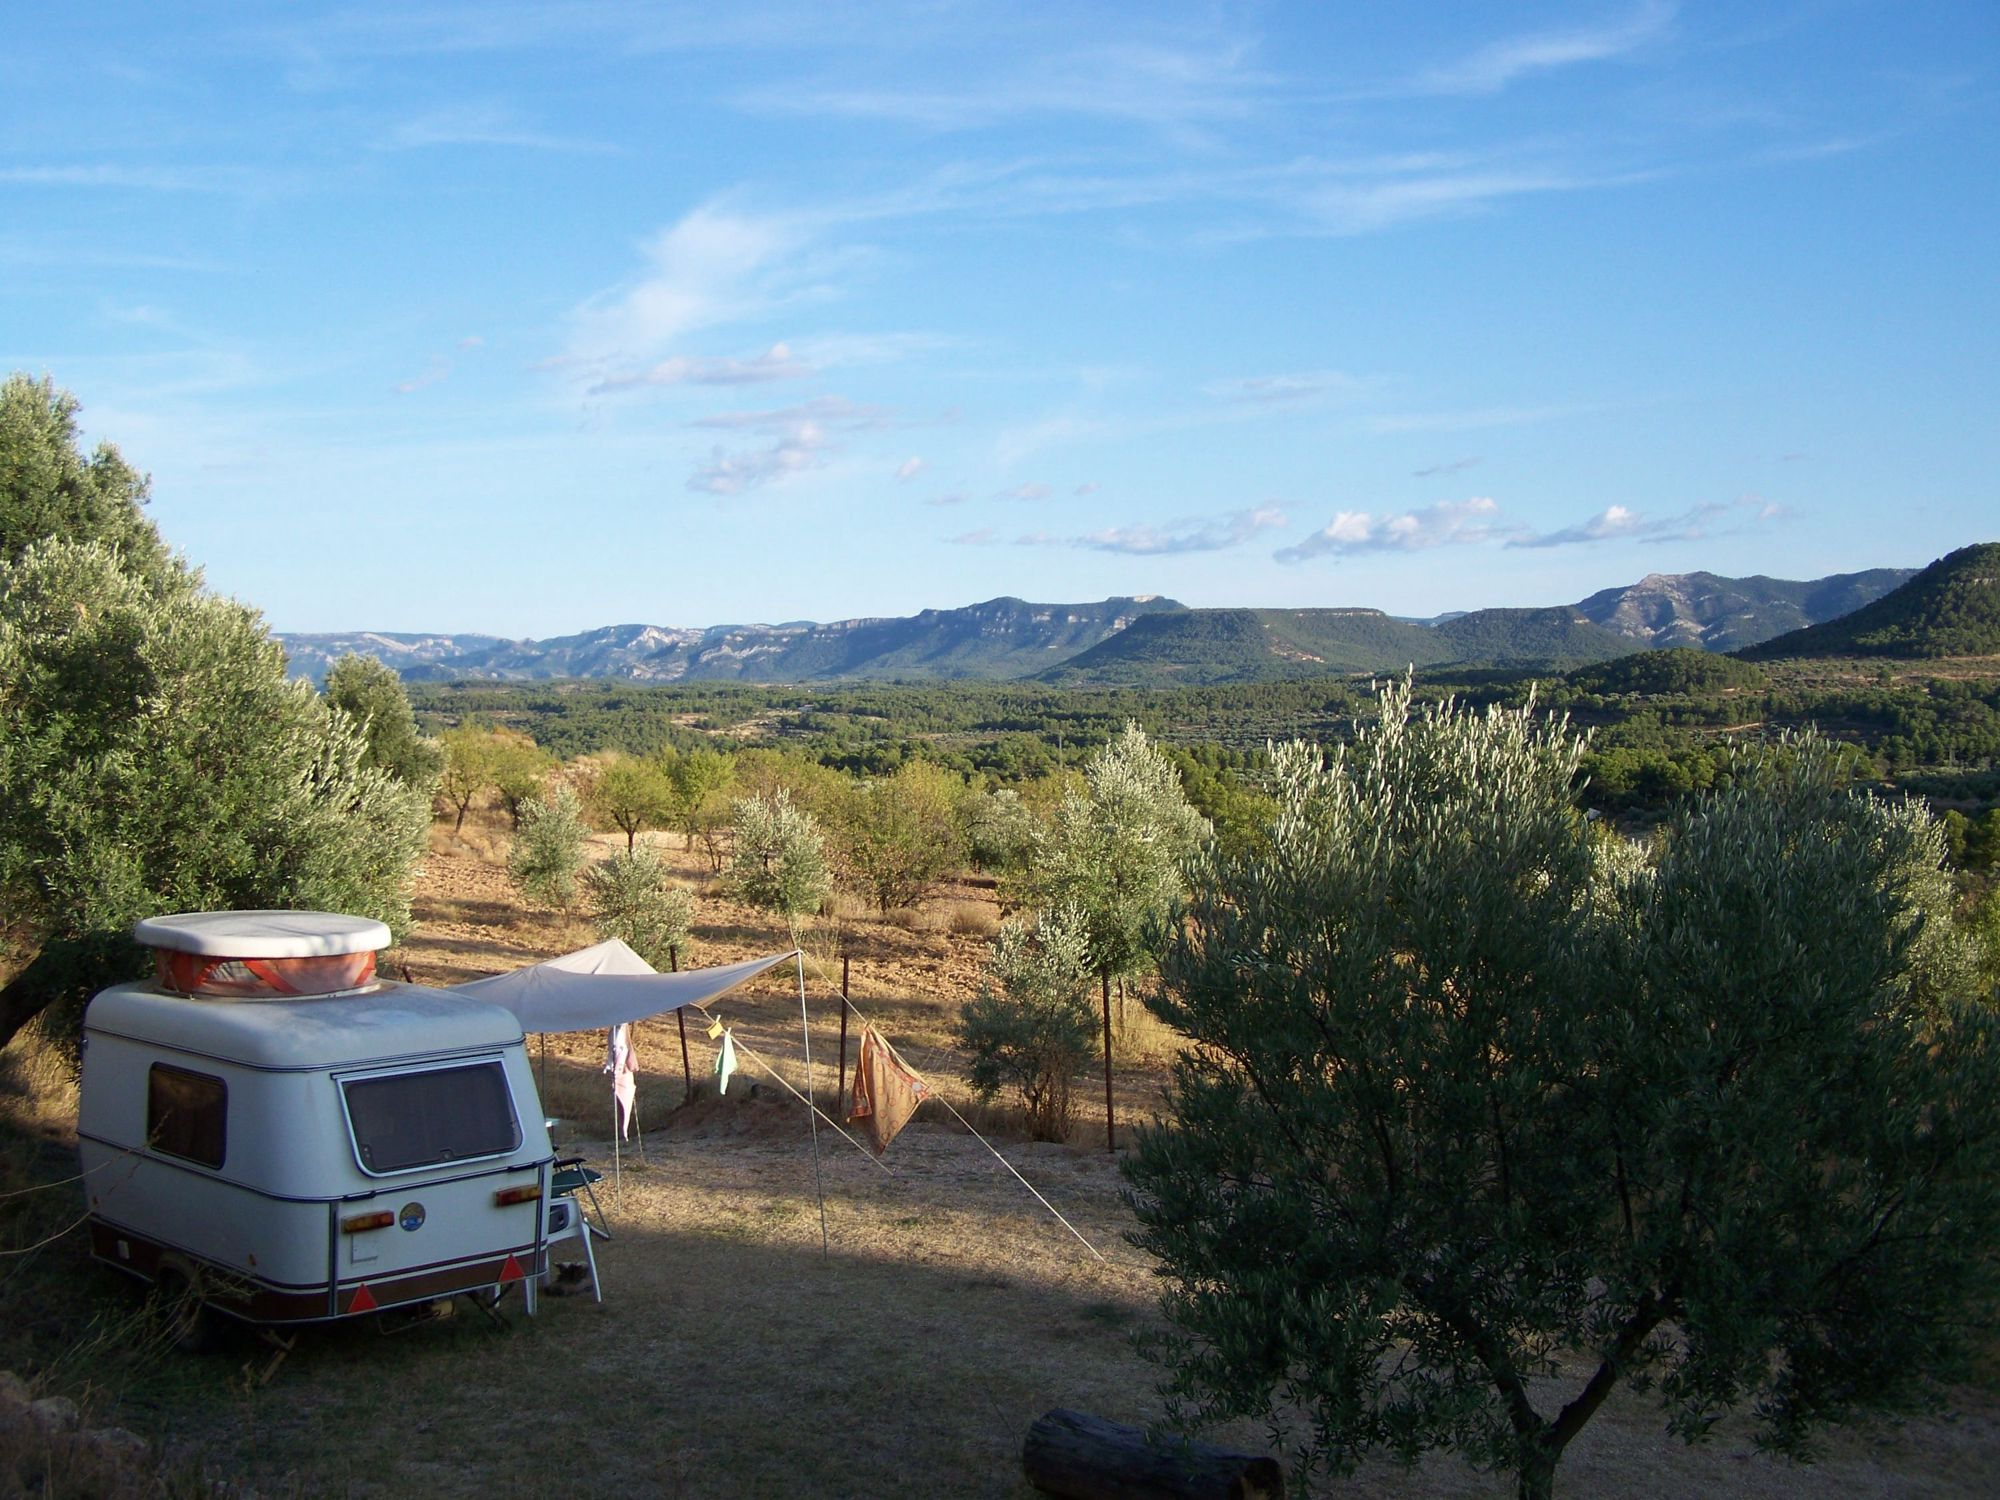 Campsites in Spain – Recommended Camping Sites in Spain – Cool Camping